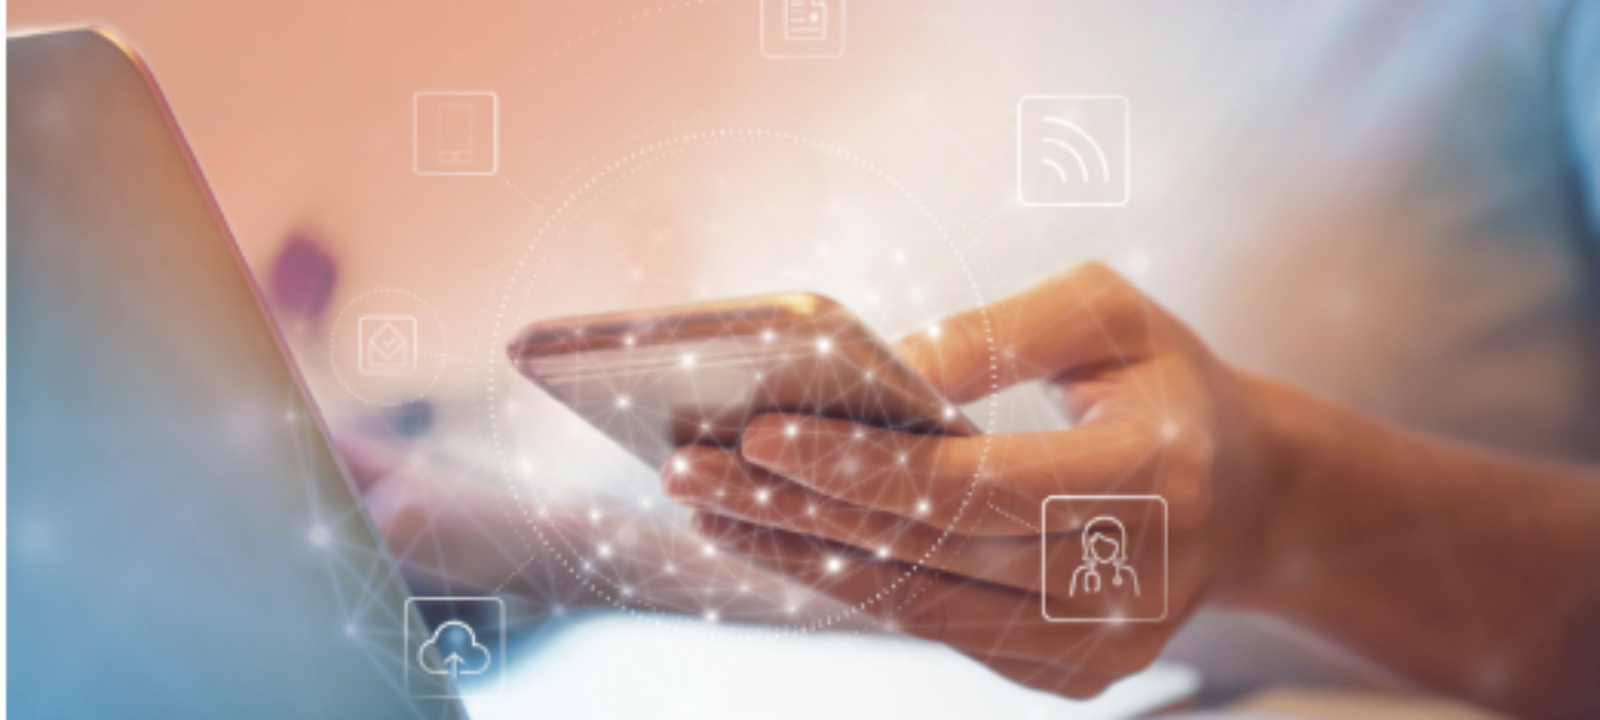 Connected healthcare: an unparalleled opportunity